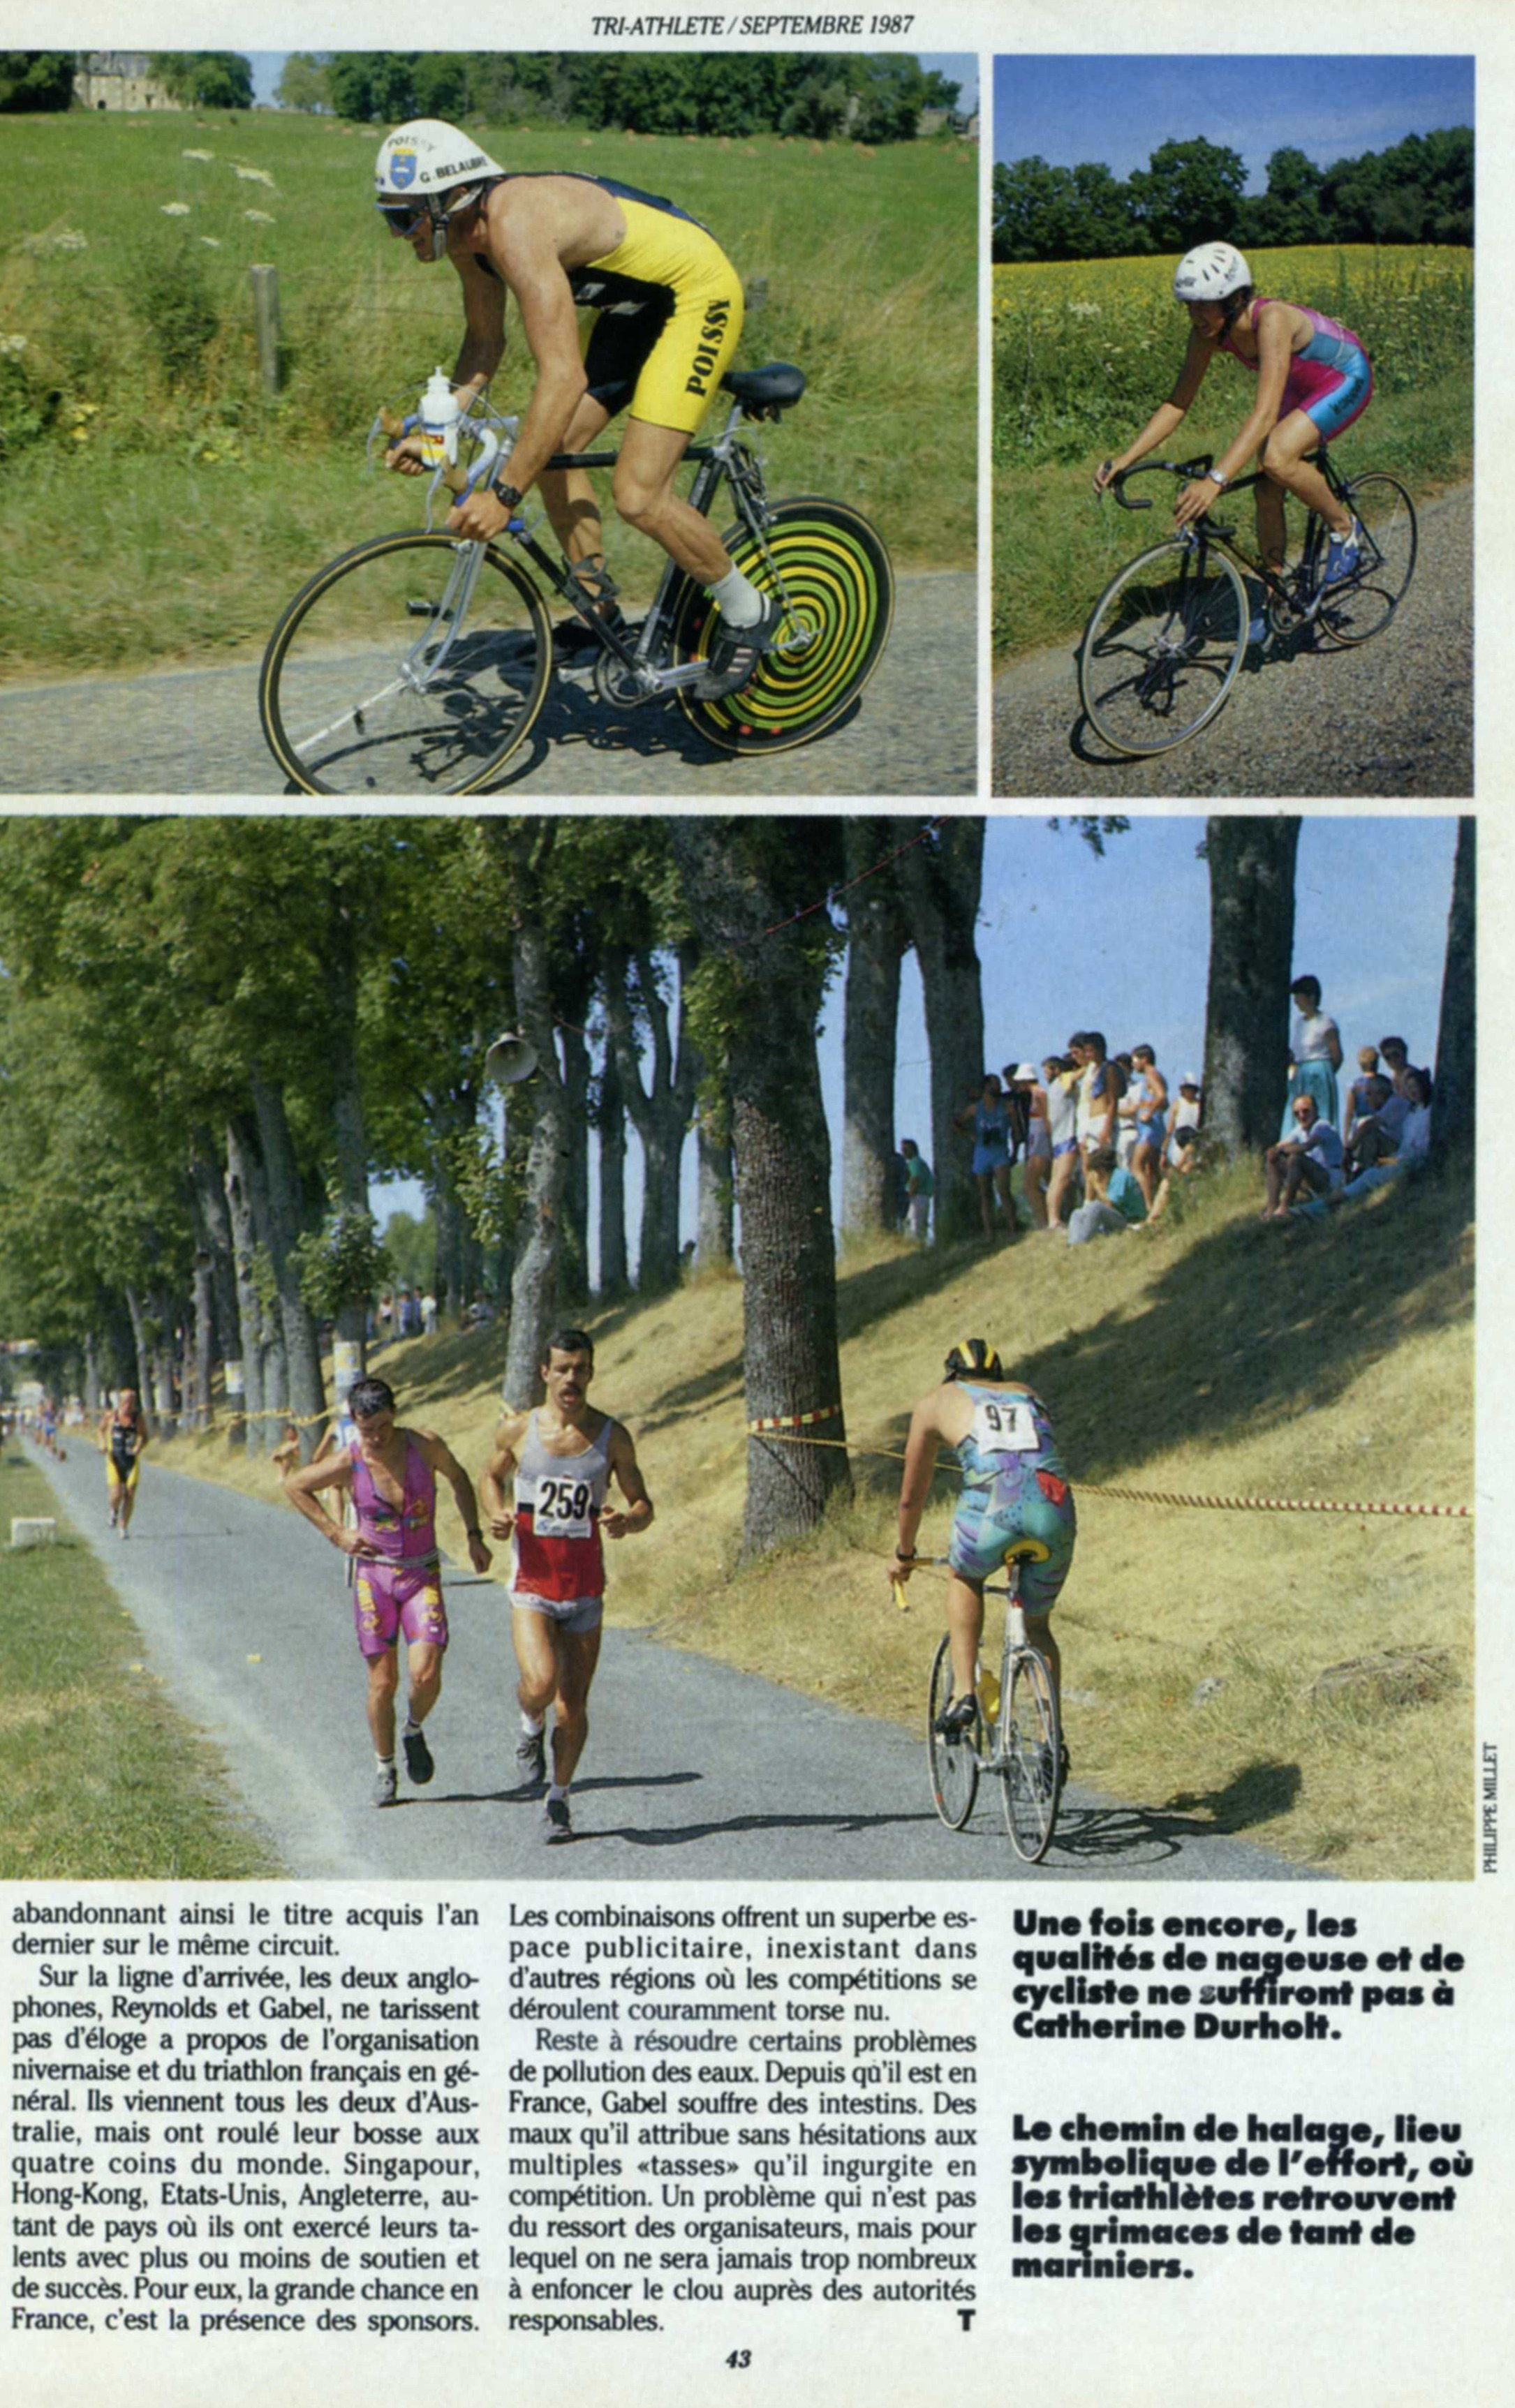 img[A]134._15-08-1987_nevers_01